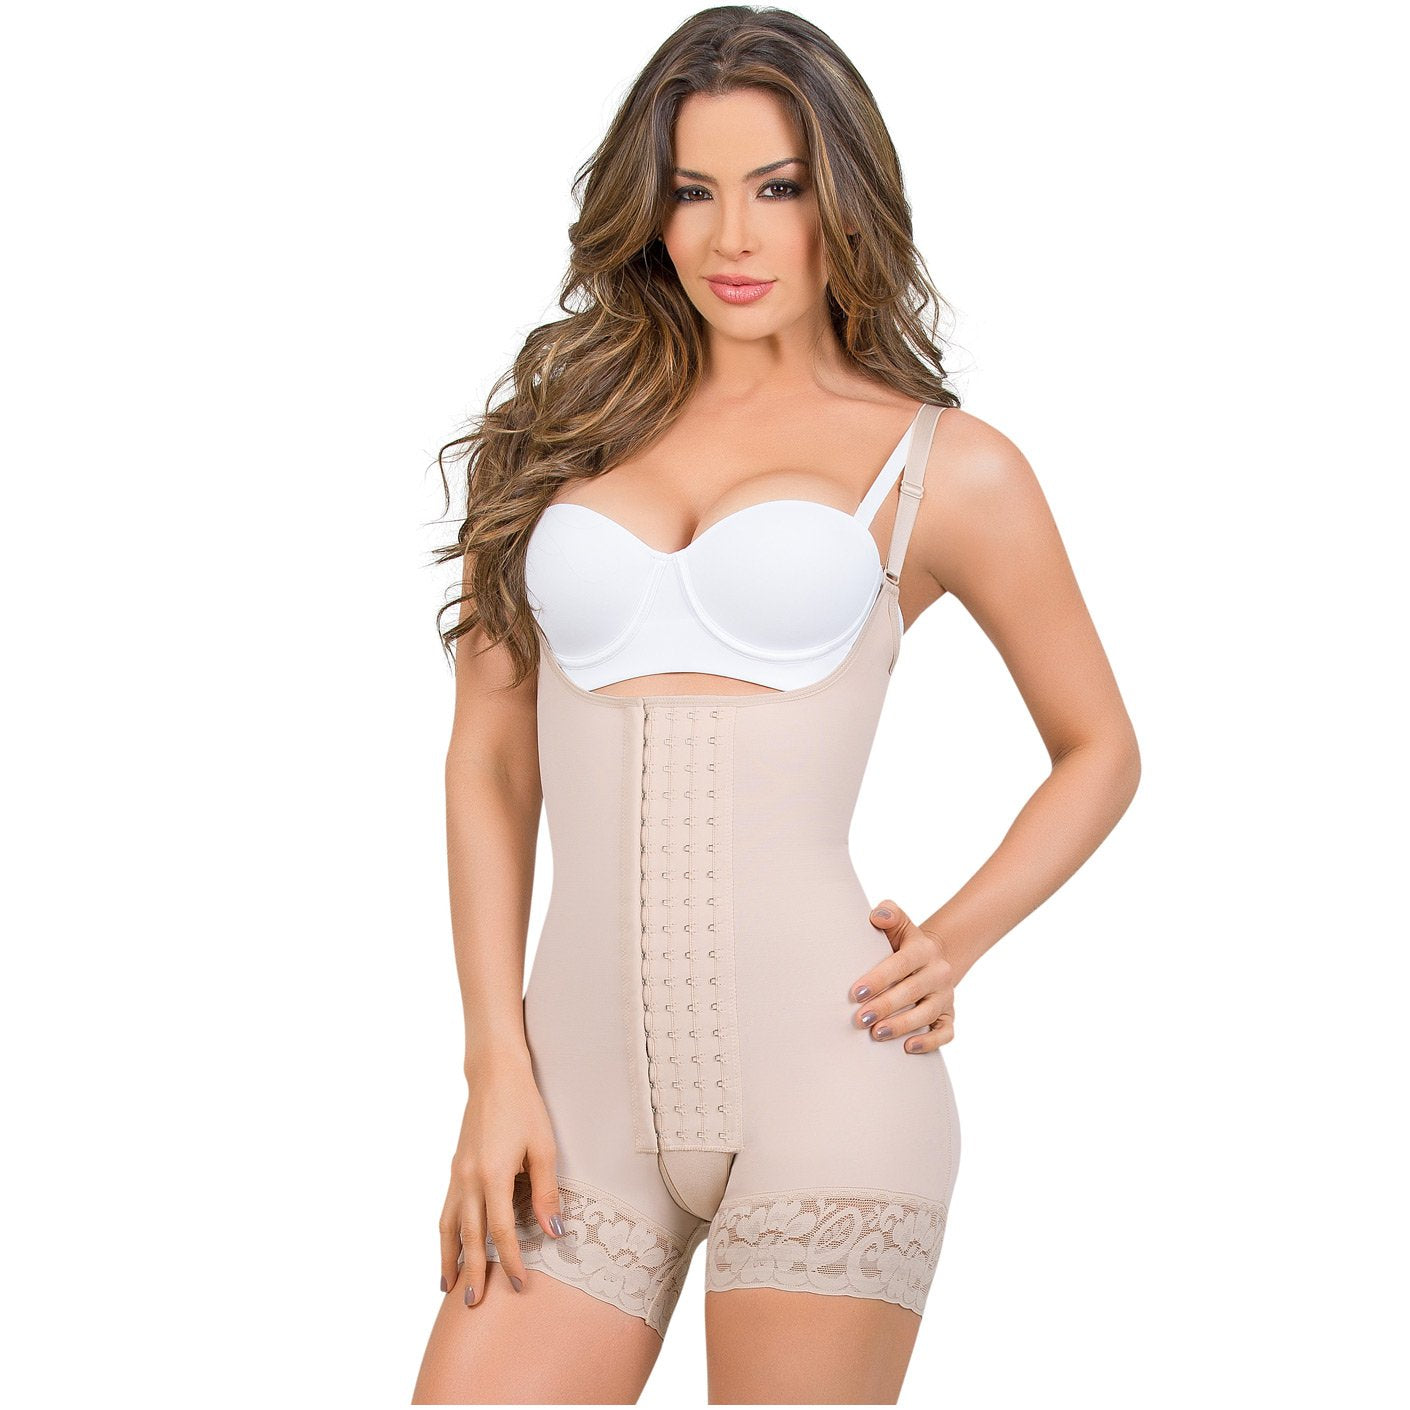 077eb256d97a MARÍAE 9334 Colombian Mid-Thigh Butt Lifter Slimming Shapewear - Showmee